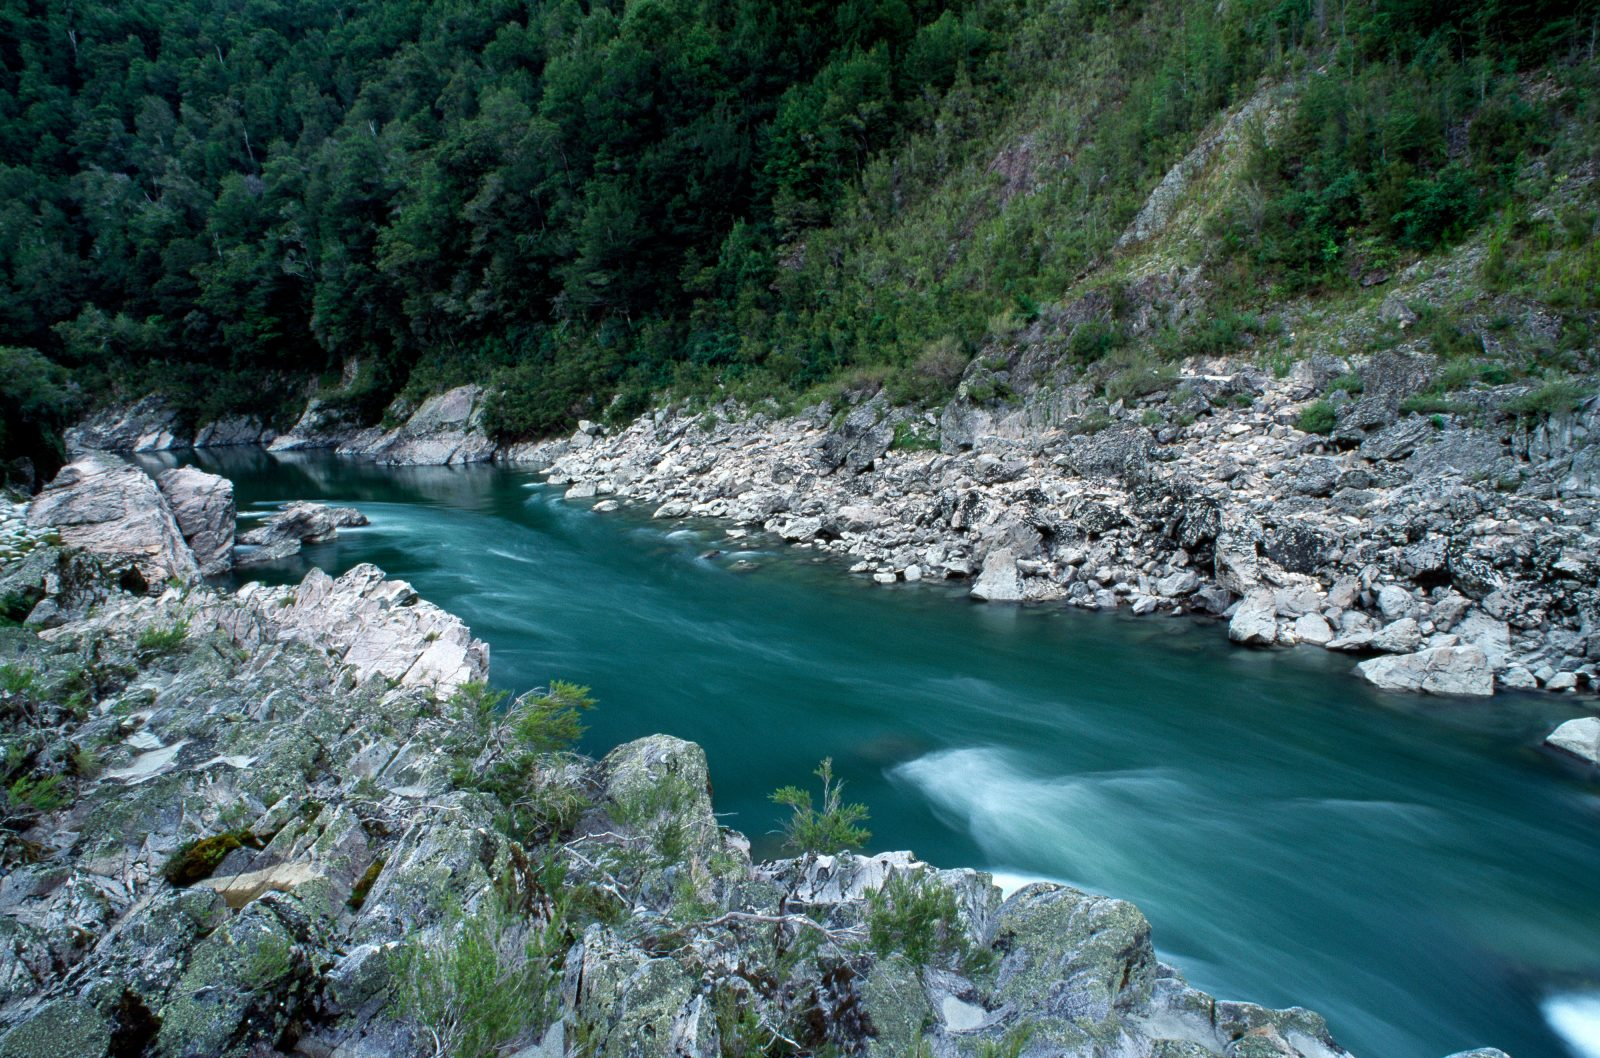 "For 75 of its 170 kilometres the Buller River runs through steep gorges, taking on various shades of colour from concrete-grey to jade green. Guided by four Maori, surveyor Thomas Brunner made the first European descent of the river's course in 1846-47. The trip took 170 days and was arguably the most gruelling journey in the exploration of New Zealand. A typical entry in his diary reads: ""May 3rd, 4th and 5th. Continual heavy rains. Nothing to live on but a few rats."""